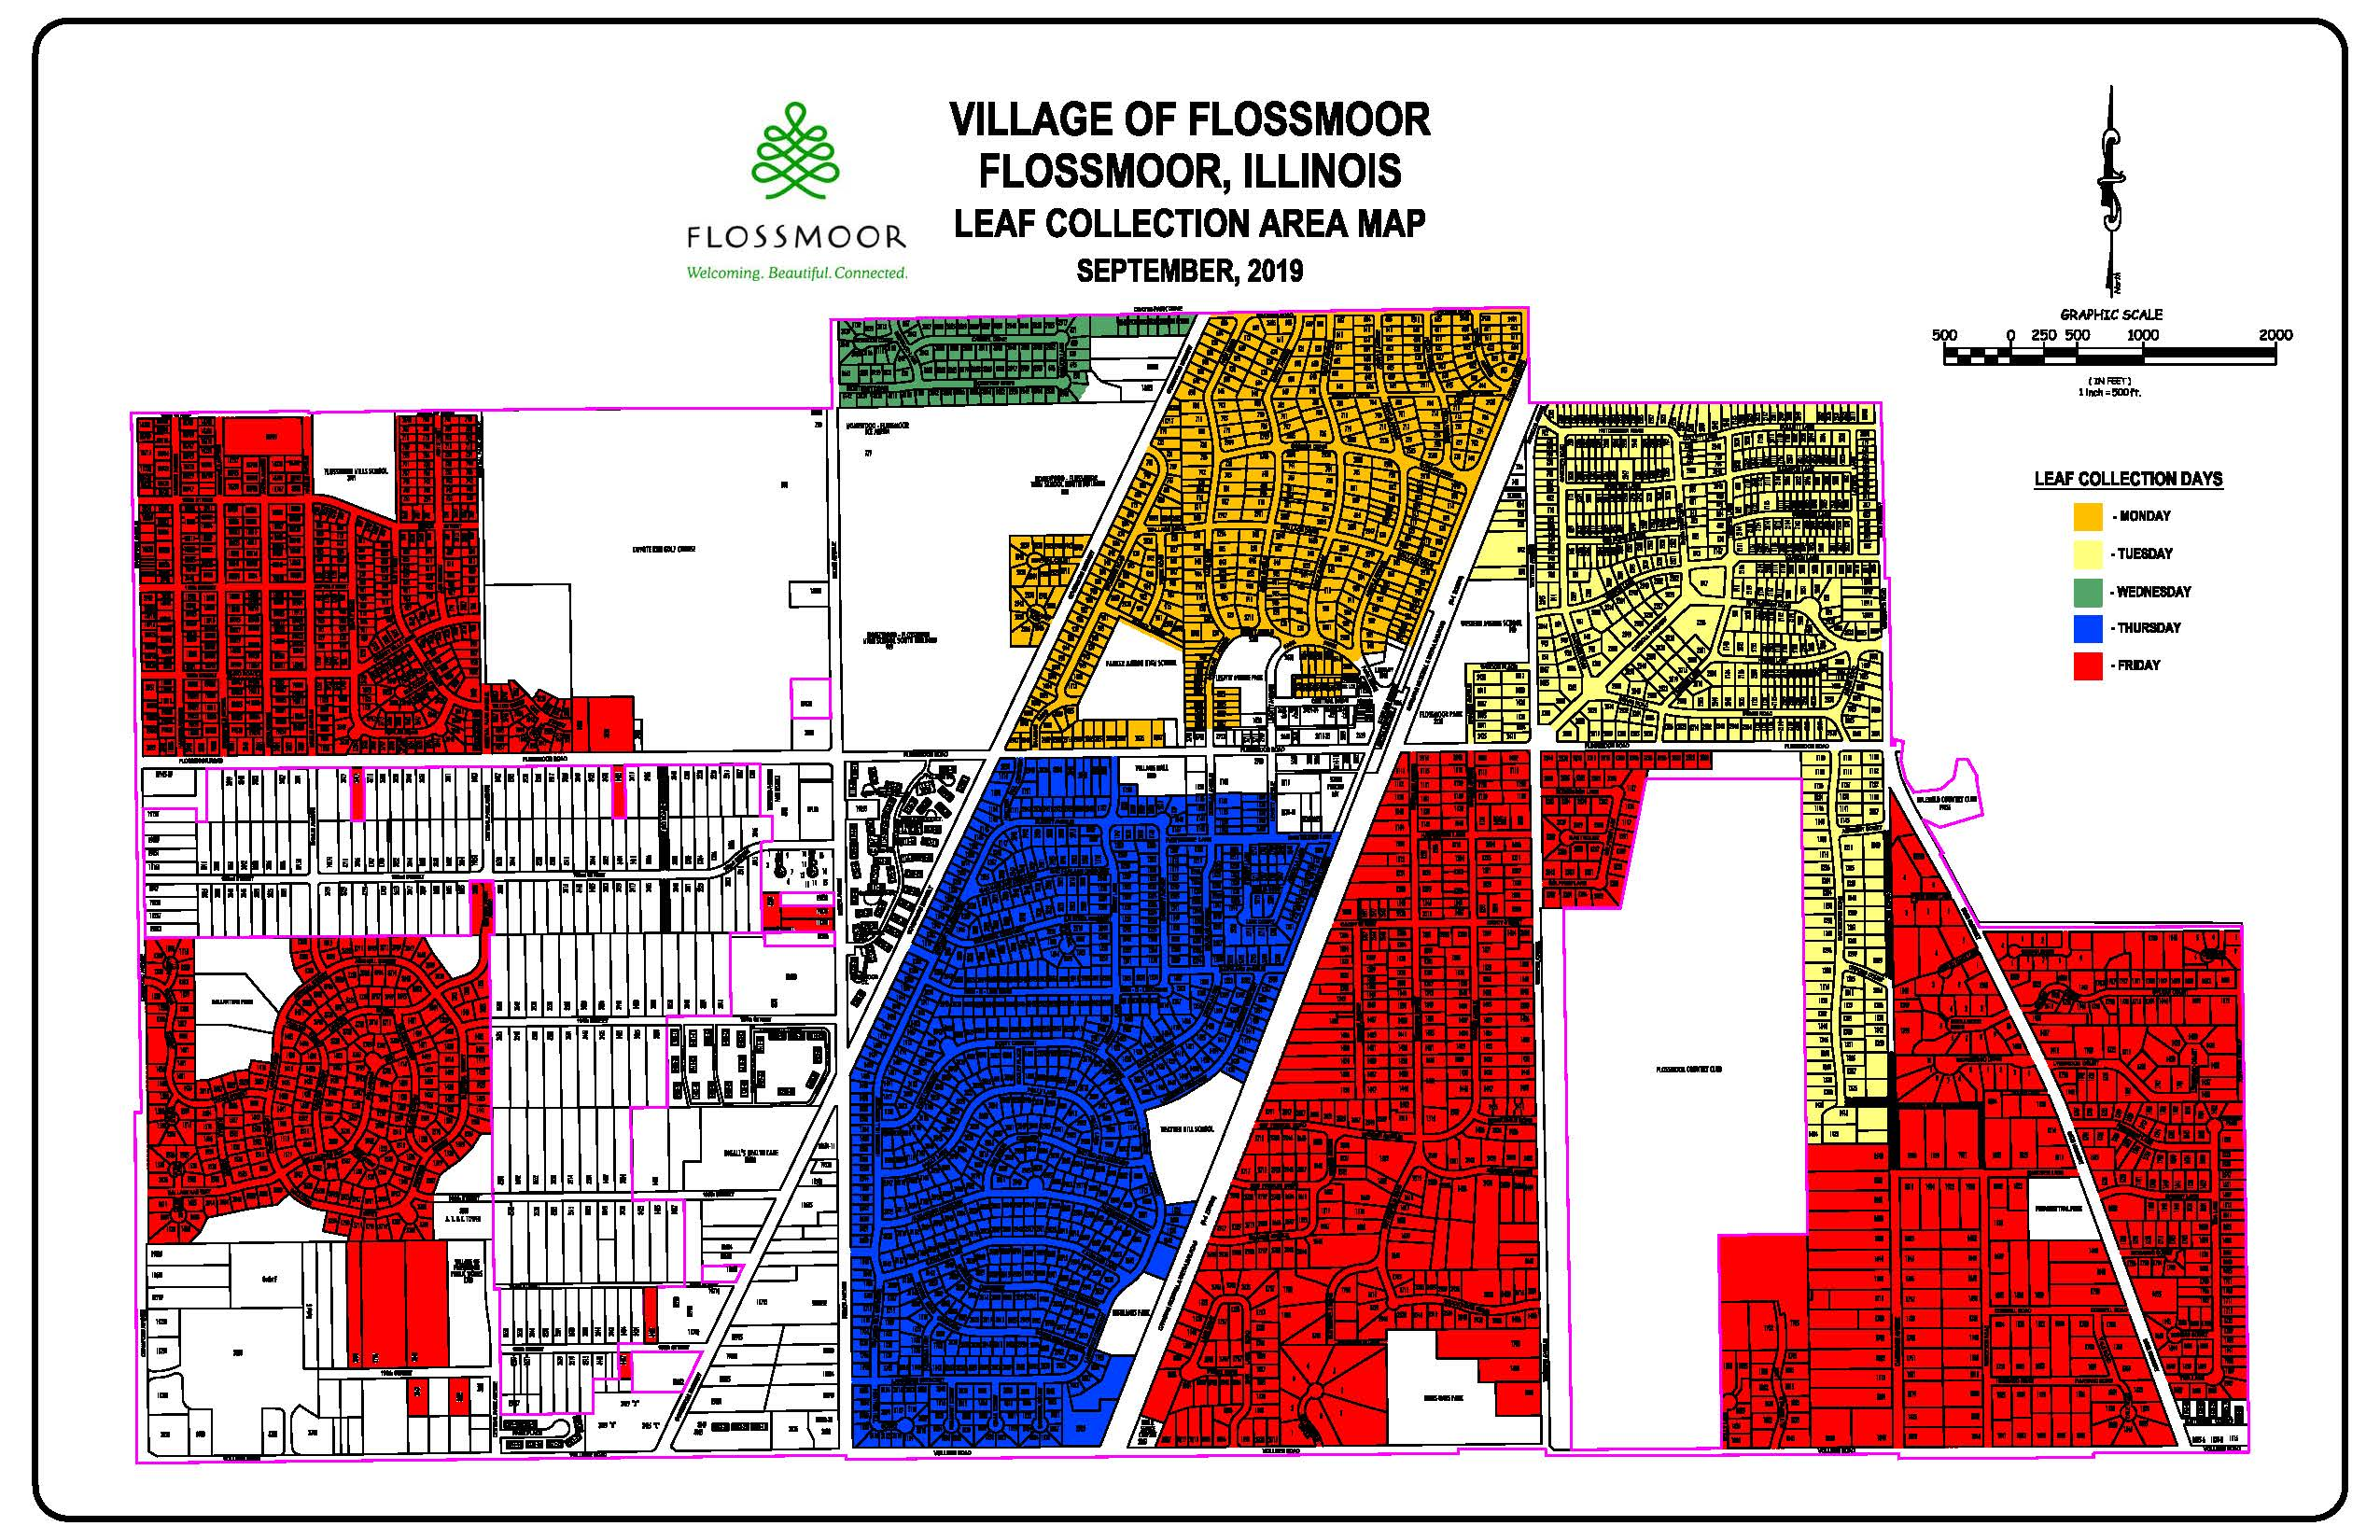 Flossmoor Leaf Collection Area Map